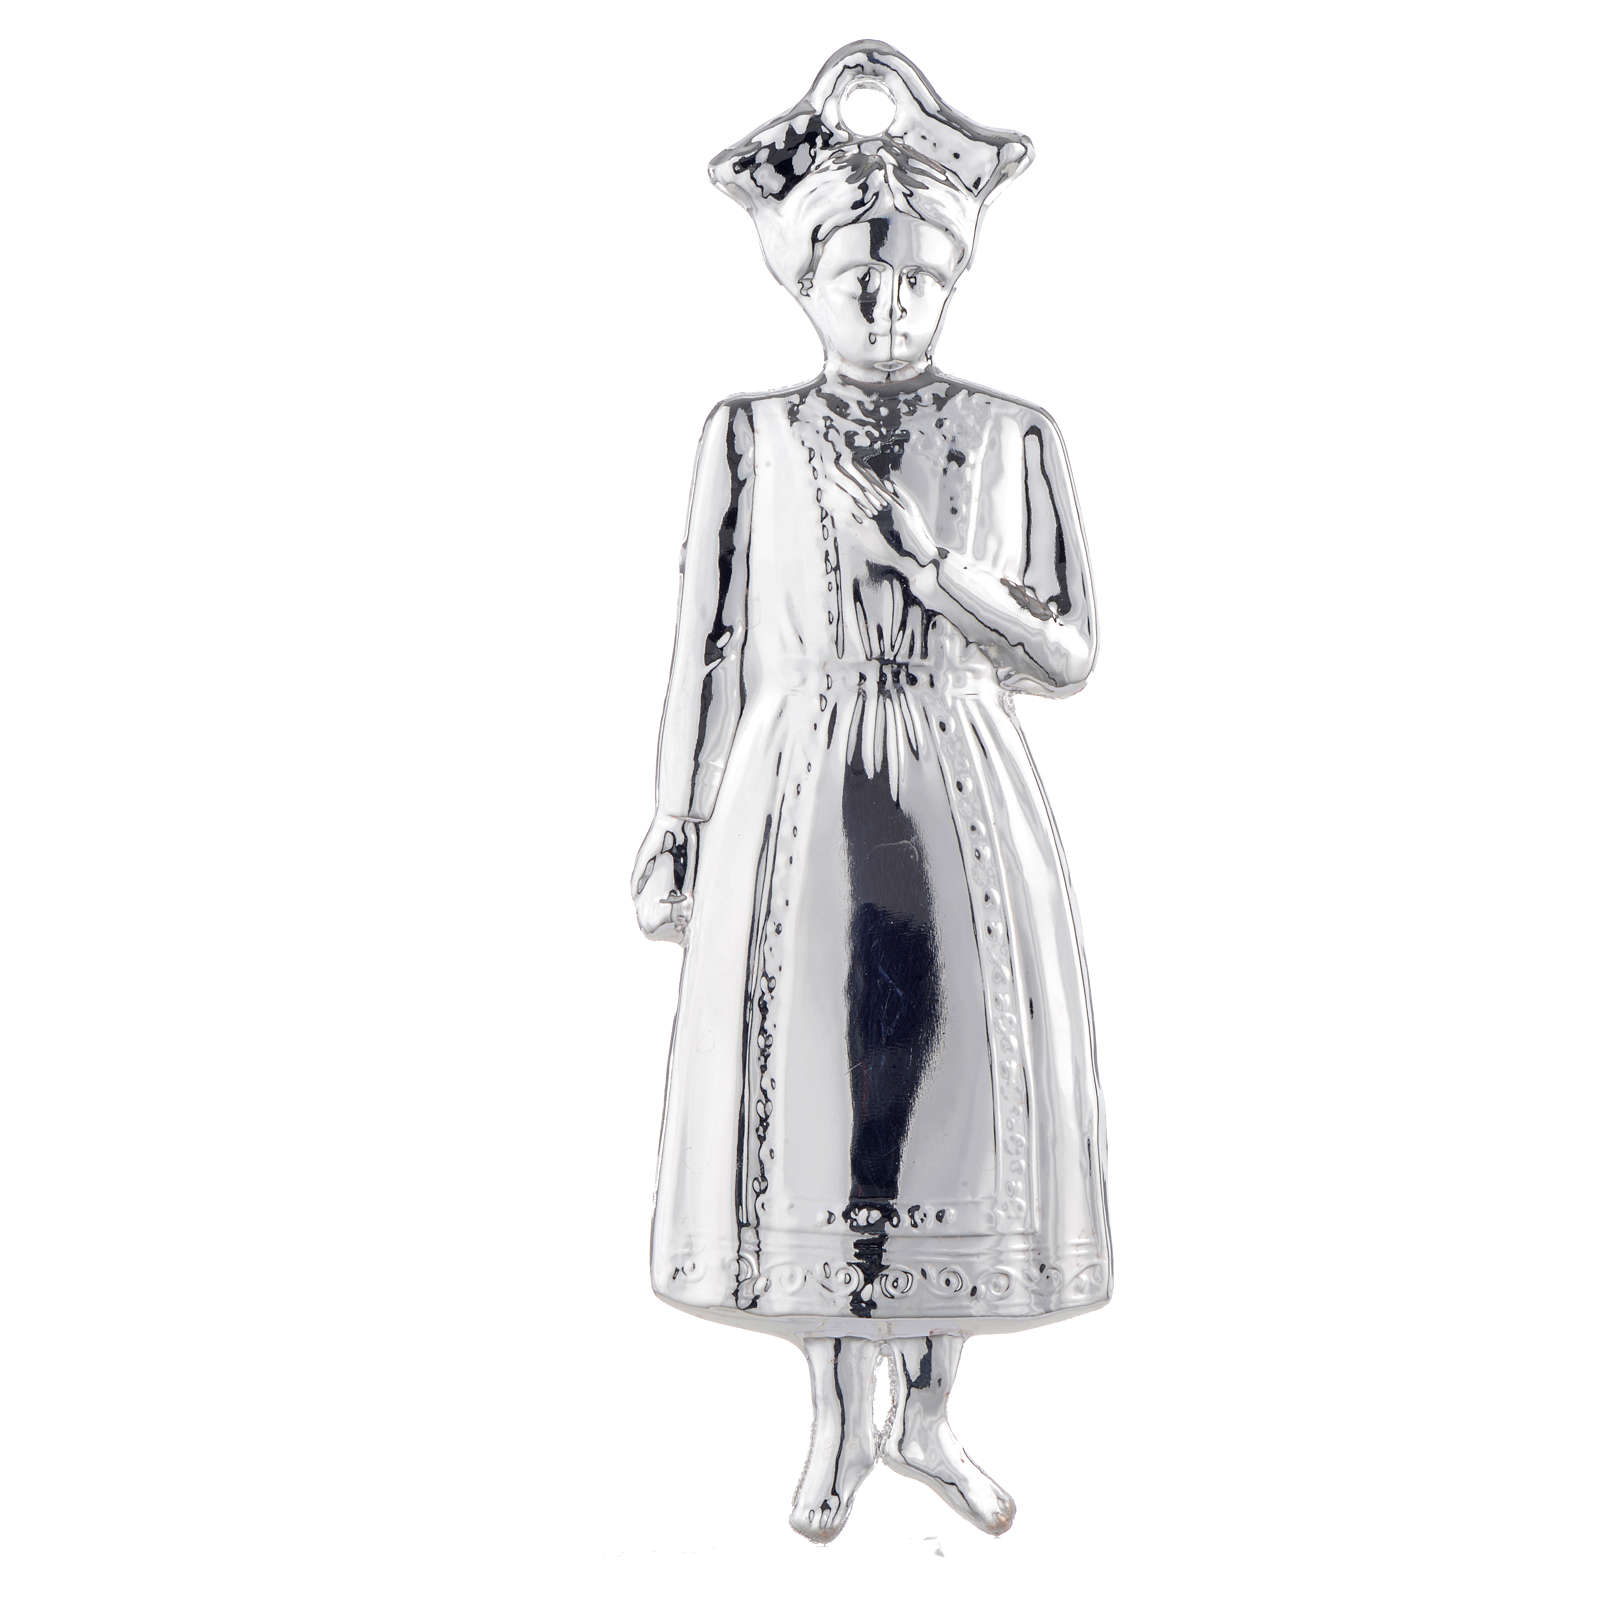 Ex-voto, young girl in sterling silver or metal, 15cm 3